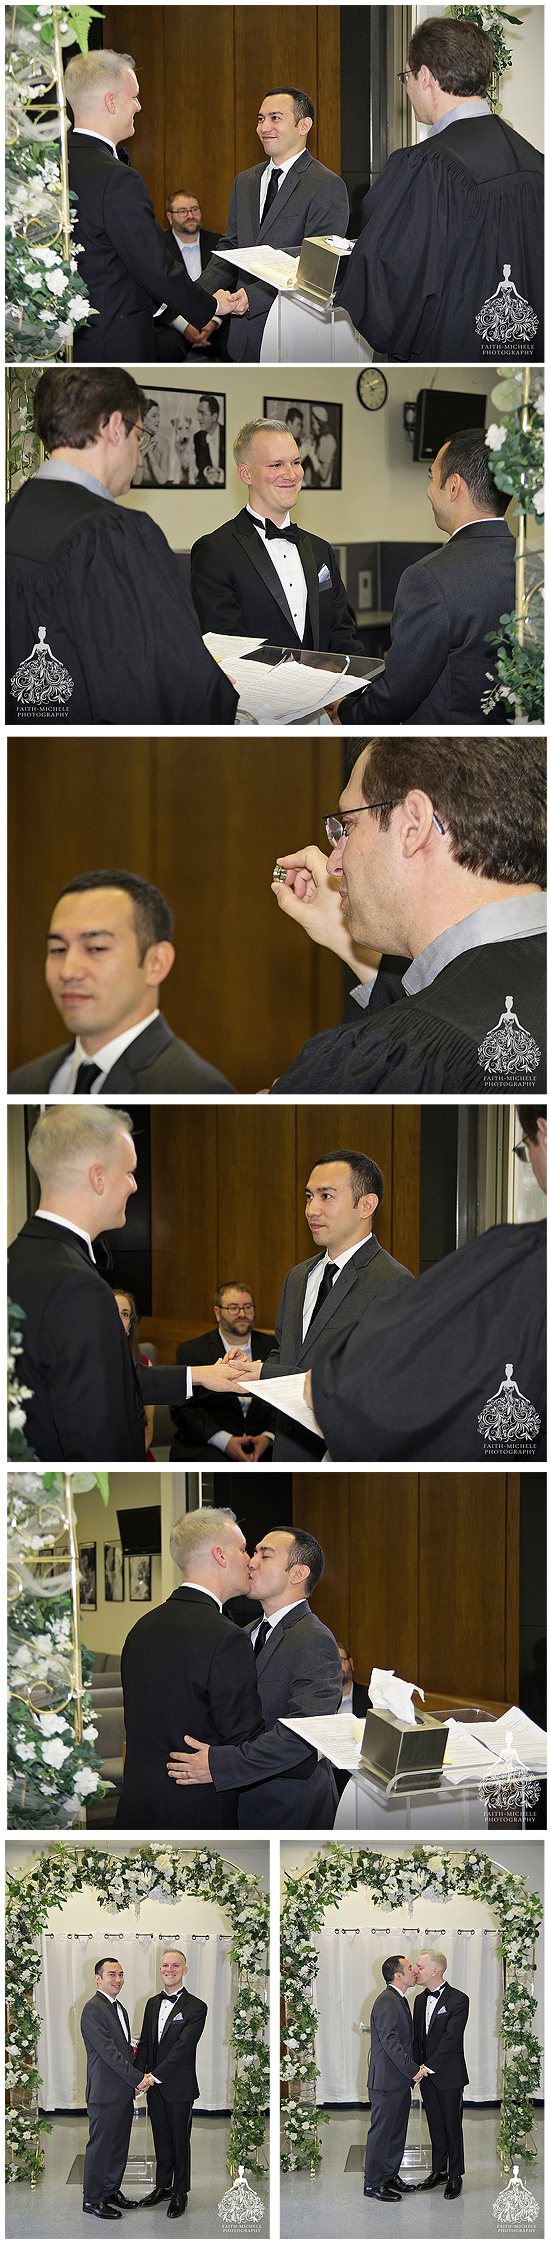 Beverly Hills Courthouse same sex wedding